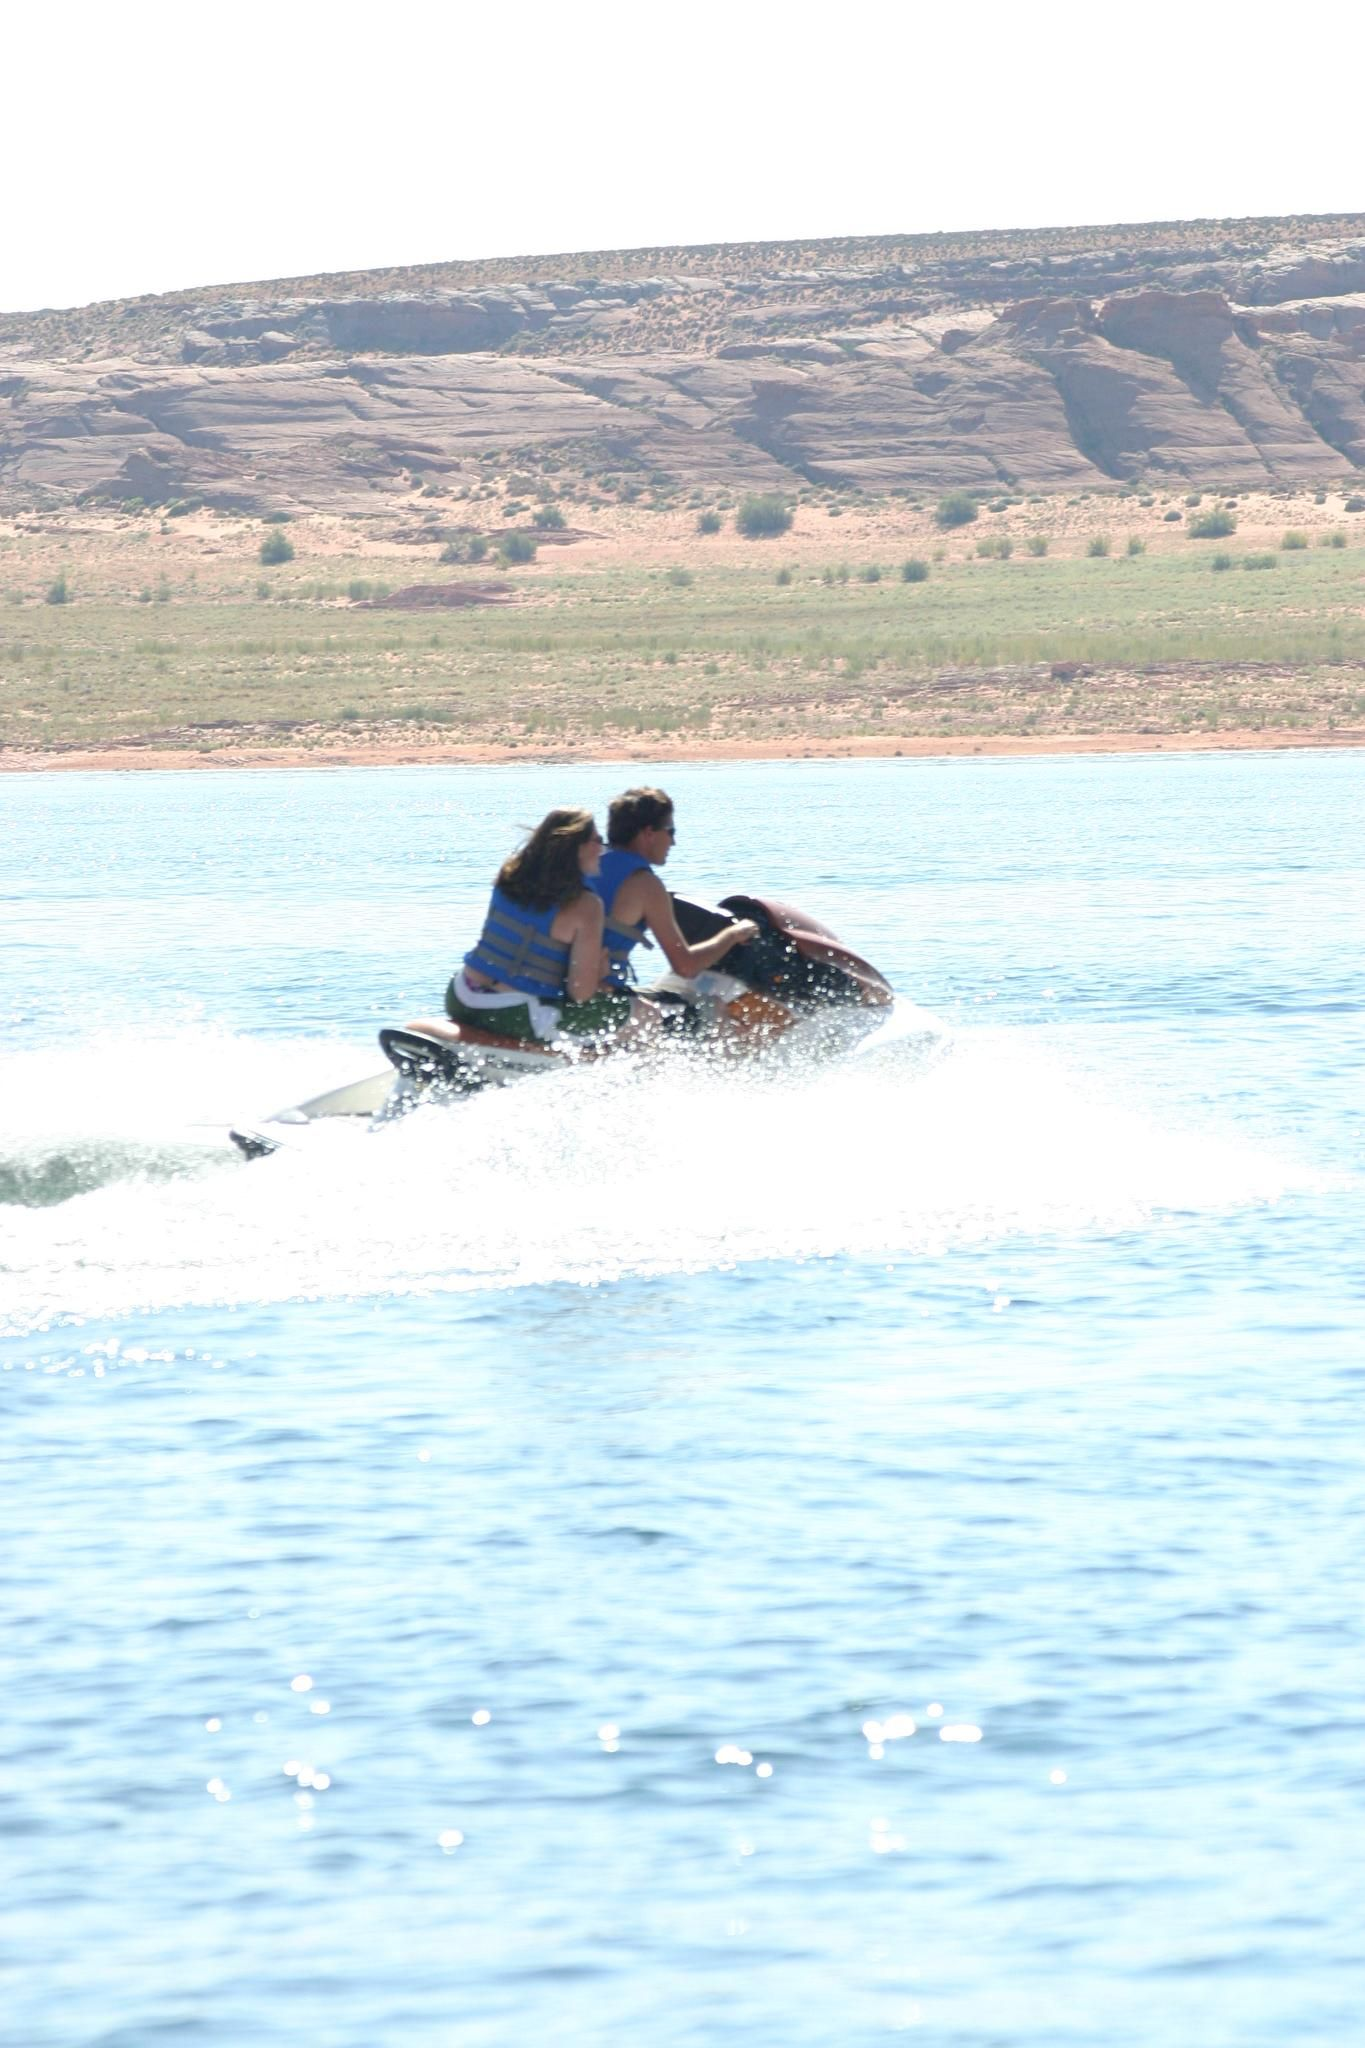 So many choices on water toys to rent at Lake Powell vacation